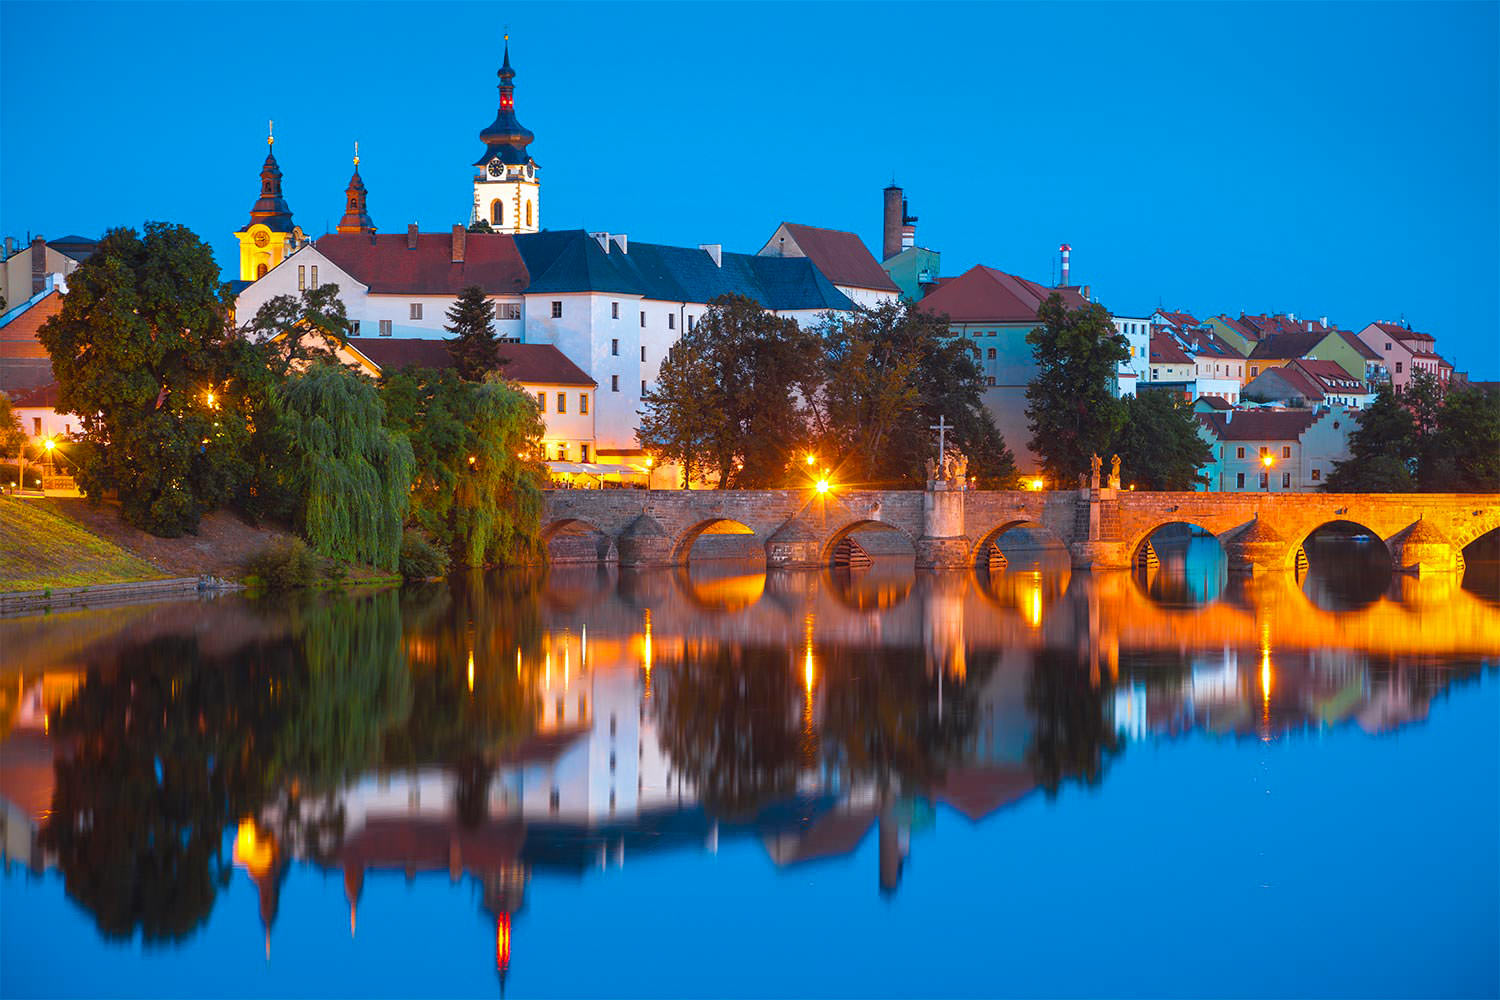 The Skyline of Písek, South Bohemia, Czechia